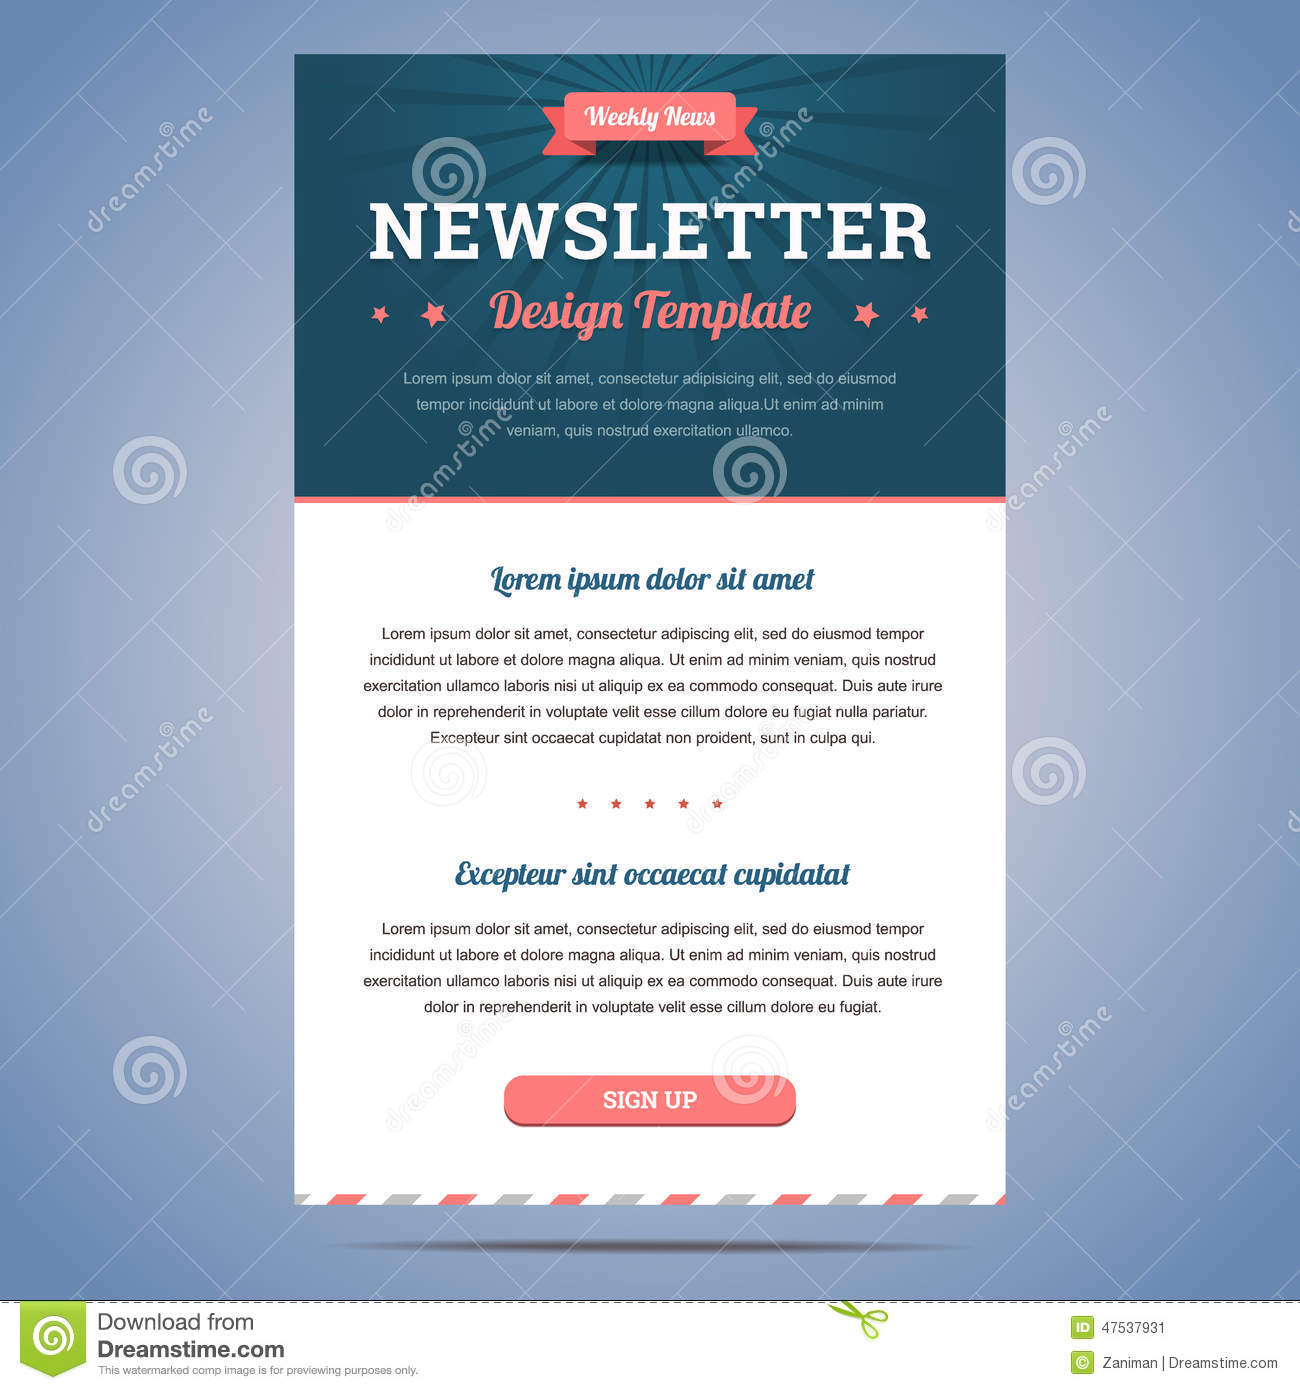 Newsletter Design Template Illustration   Megapixl